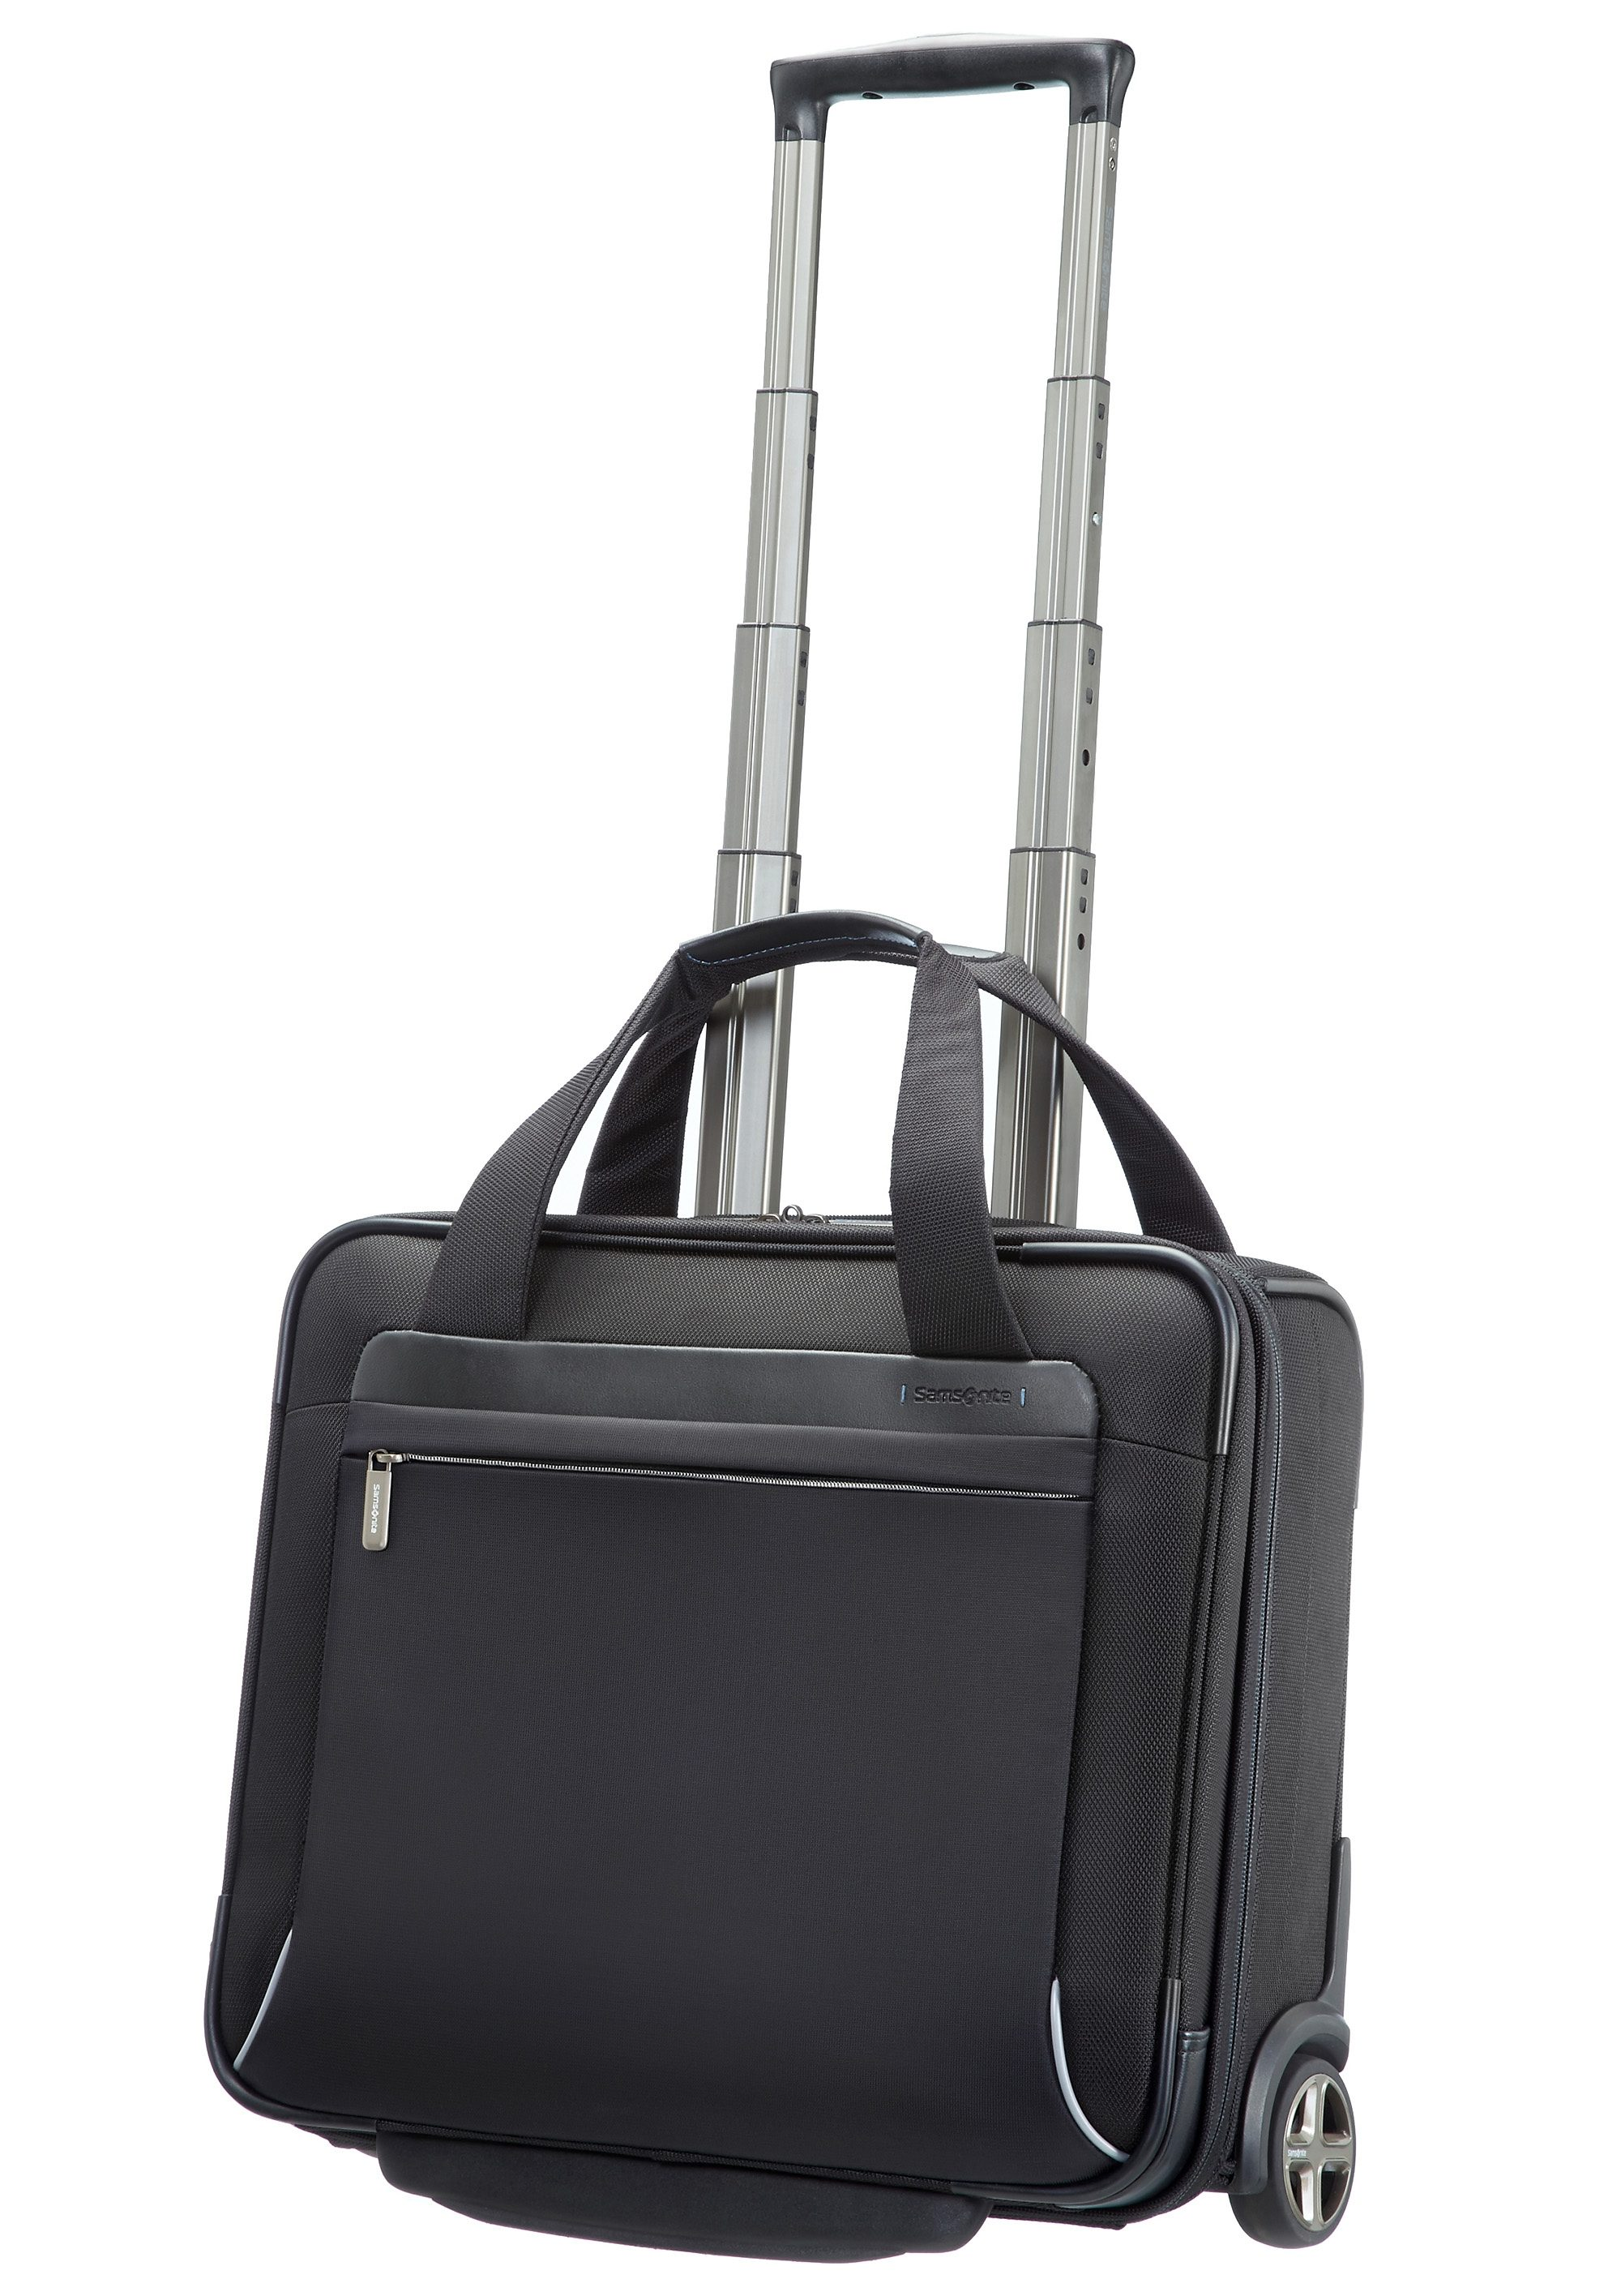 Samsonite Businesstrolley mit 2 Rollen, Tablet- und 15,6-Zoll Laptopfach, »Spectrolite«